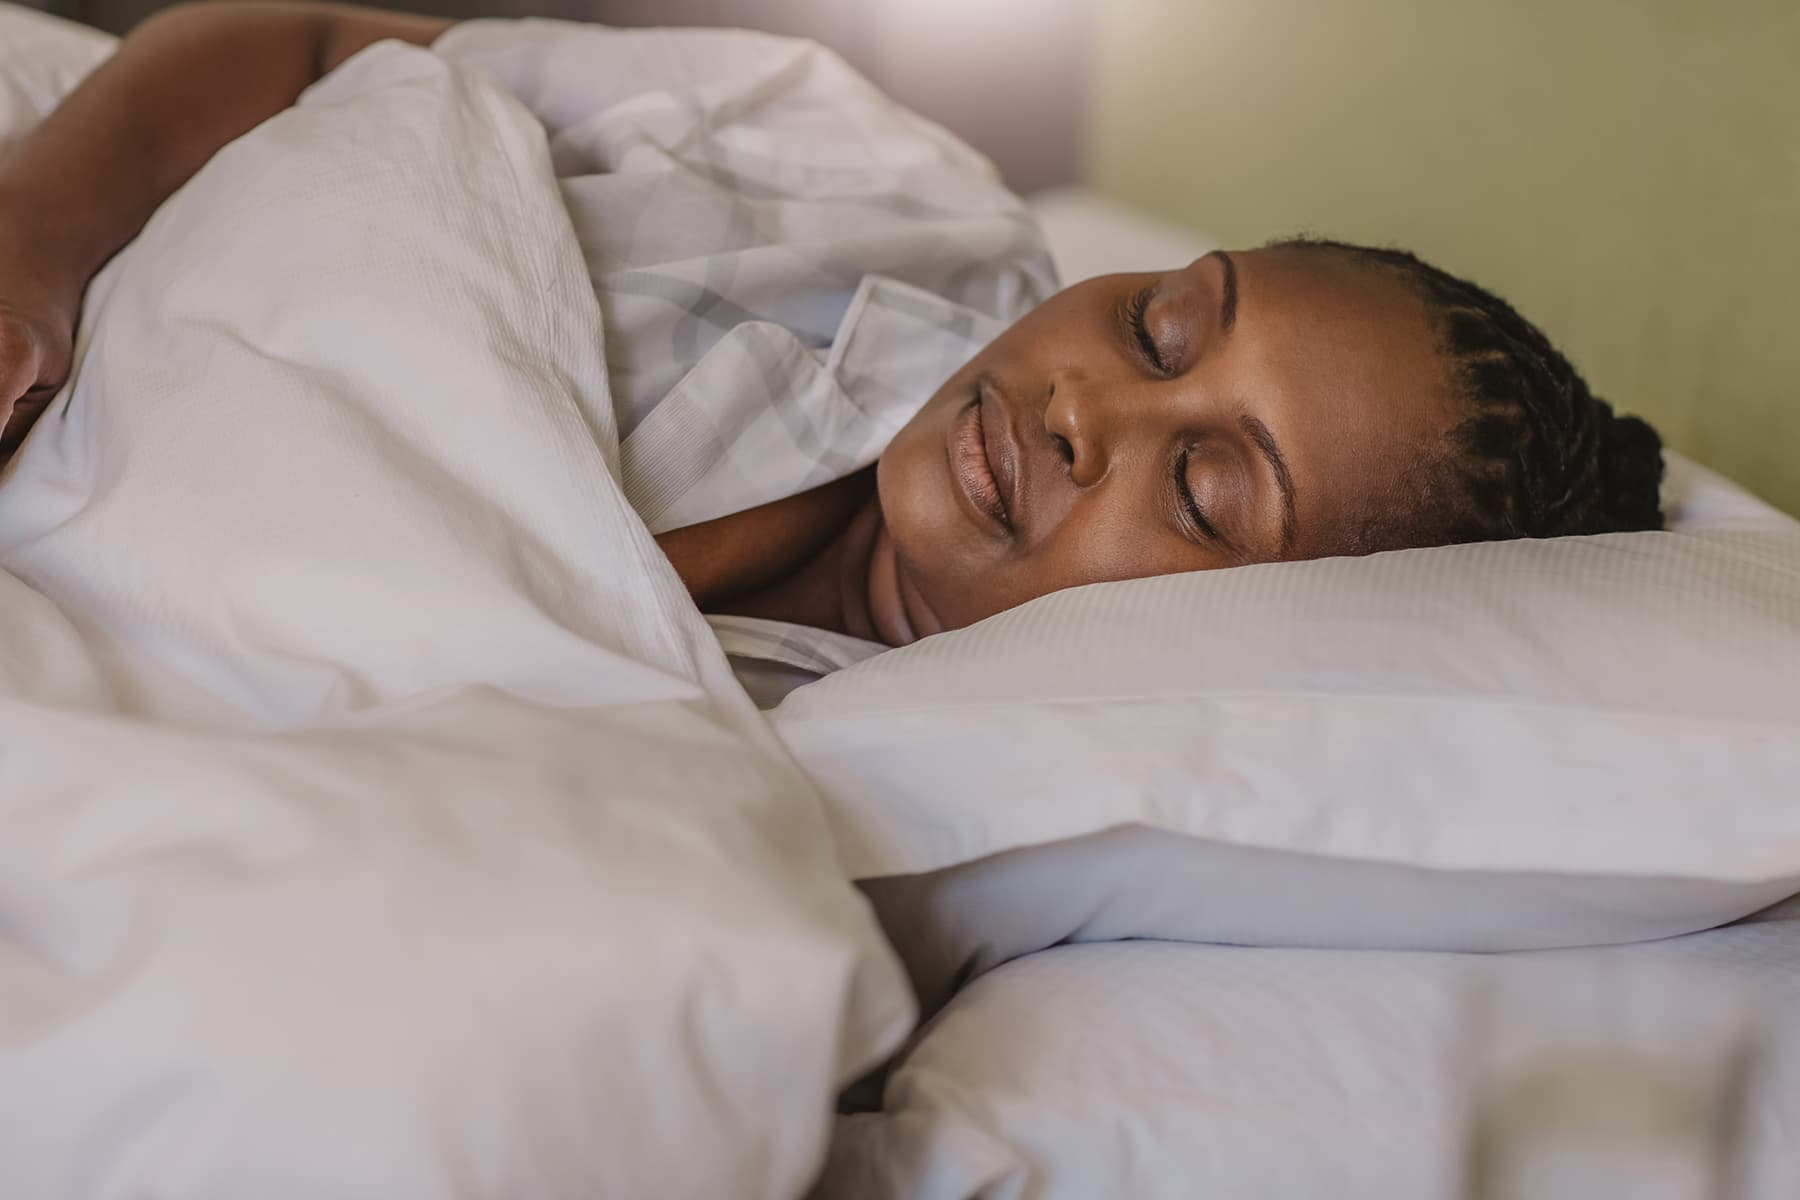 photo of woman waking up in bed